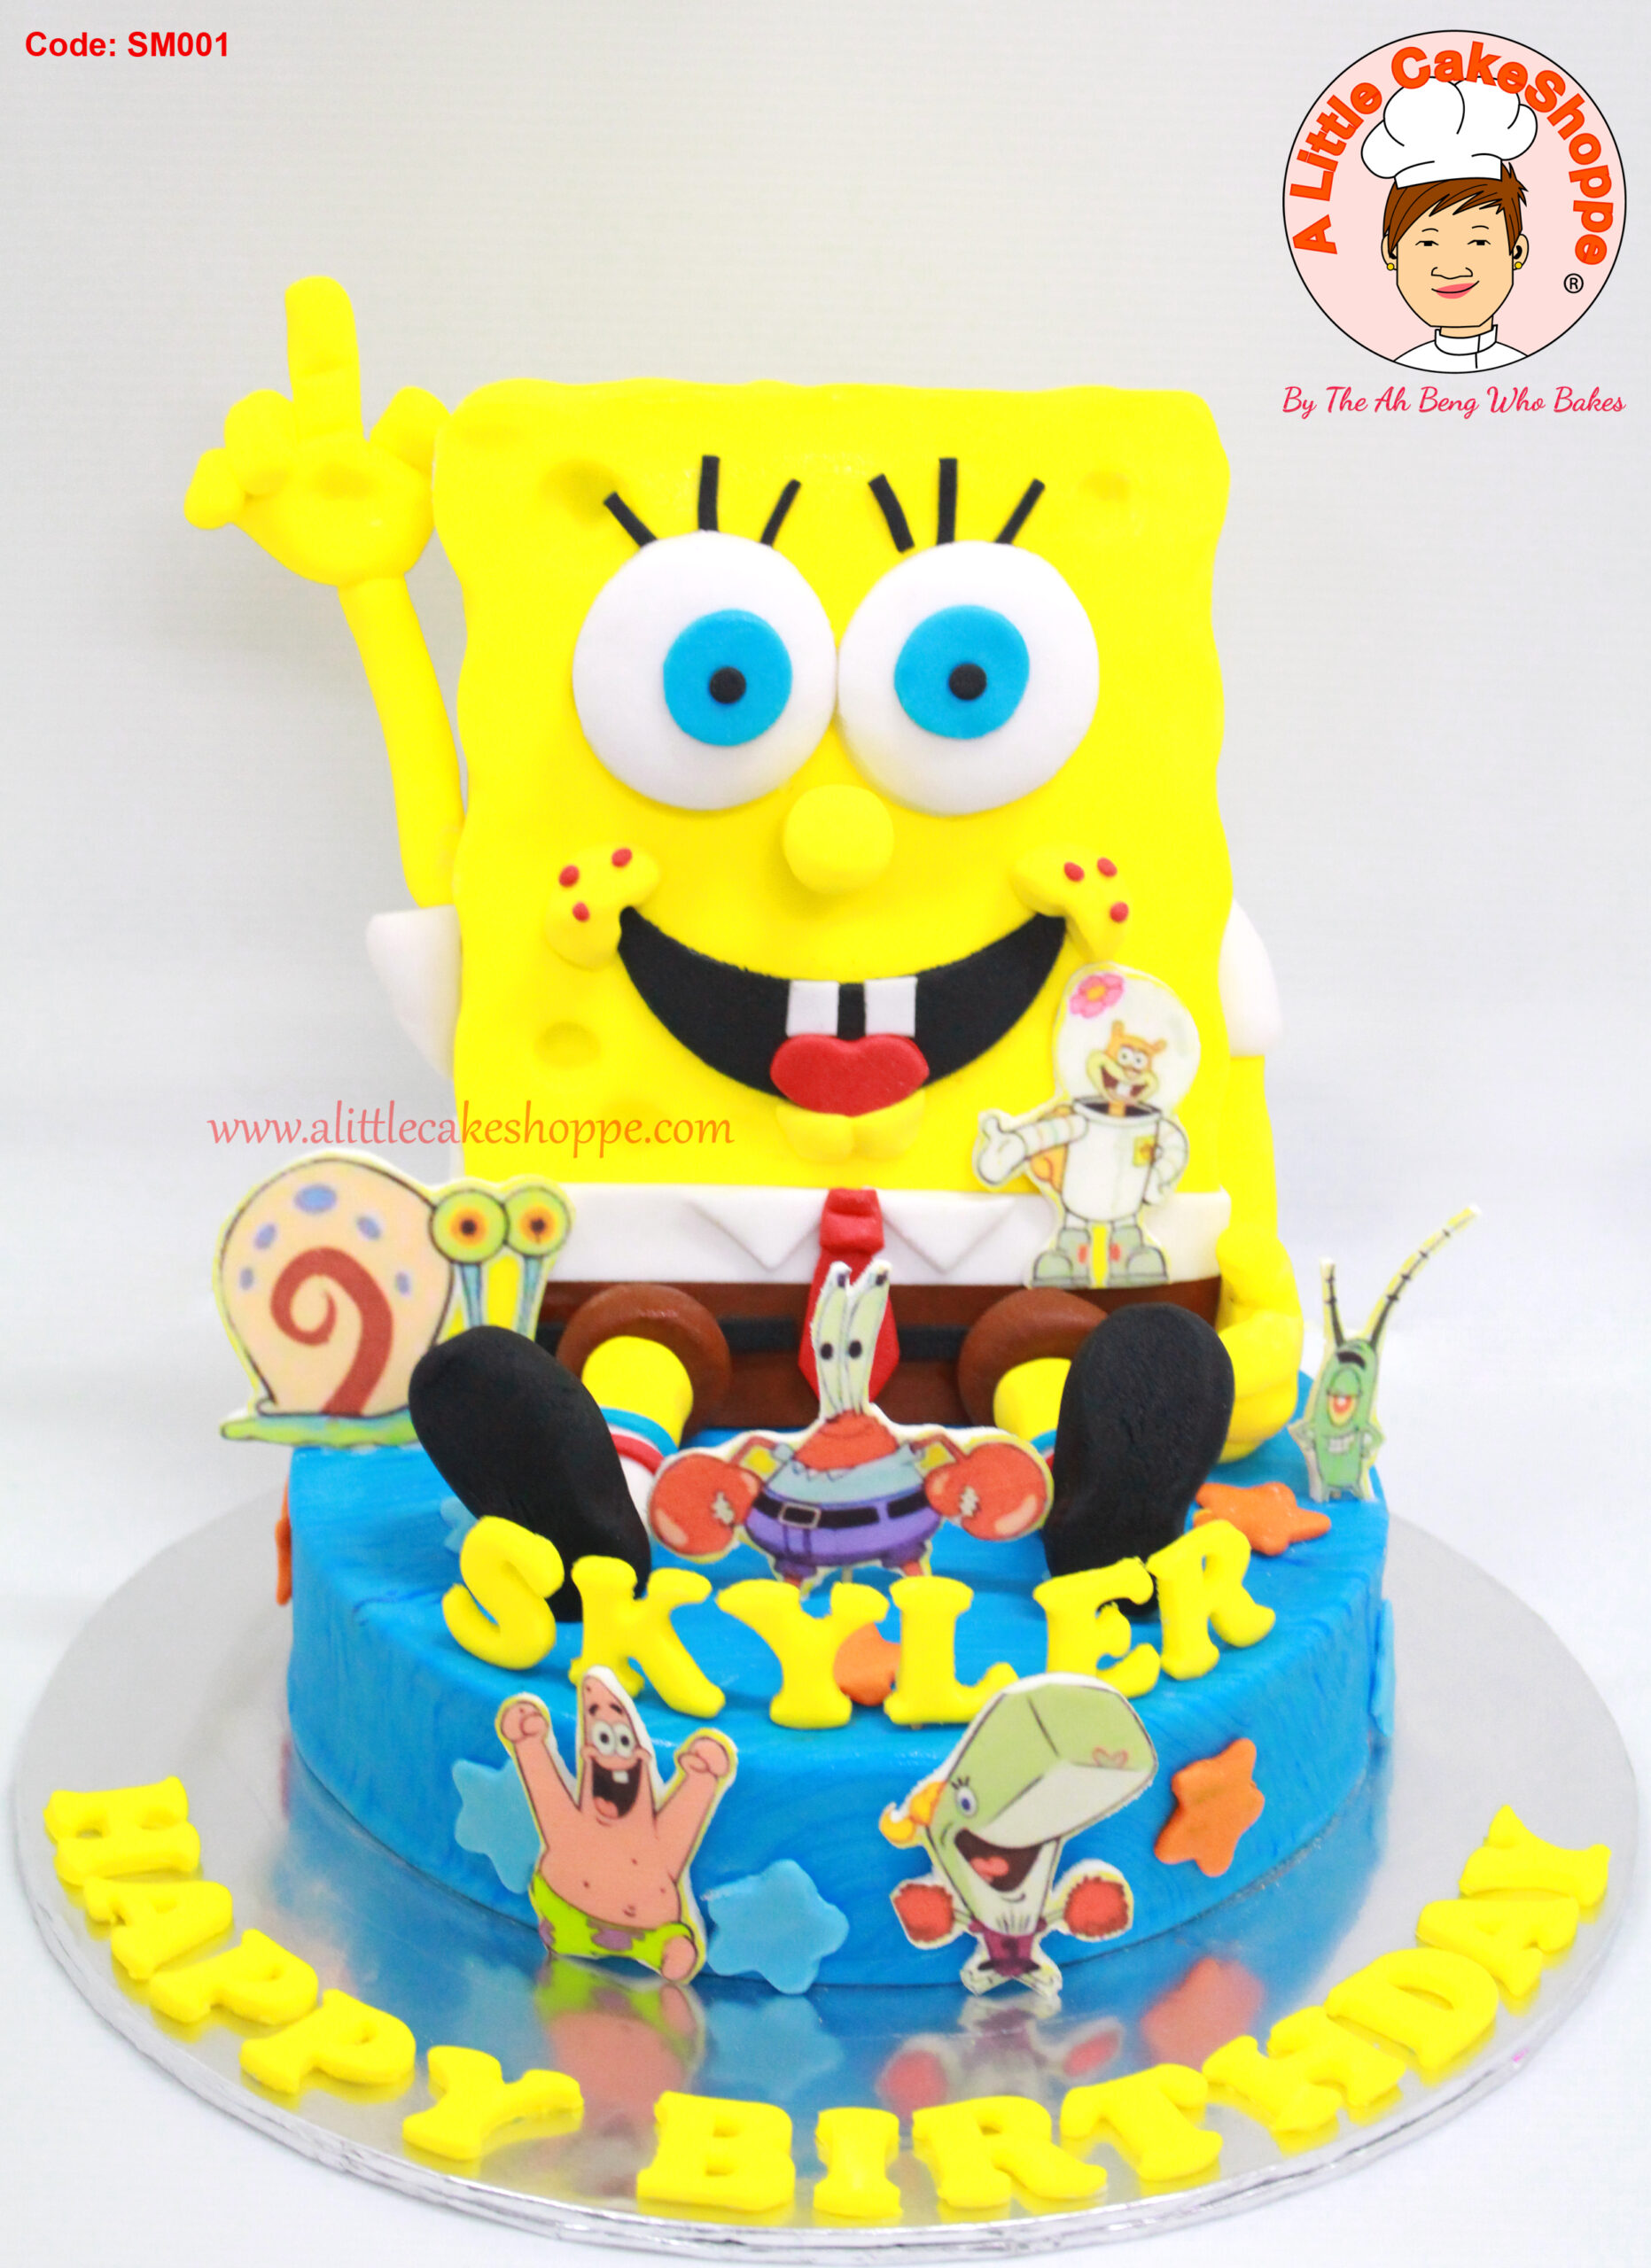 Best Customised Cake Singapore custom cake 2D 3D birthday cake cupcakes desserts wedding corporate events anniversary fondant fresh cream buttercream cakes alittlecakeshoppe a little cake shoppe compliments review singapore bakers SG cakeshop ah beng who bakes spongebob square pants